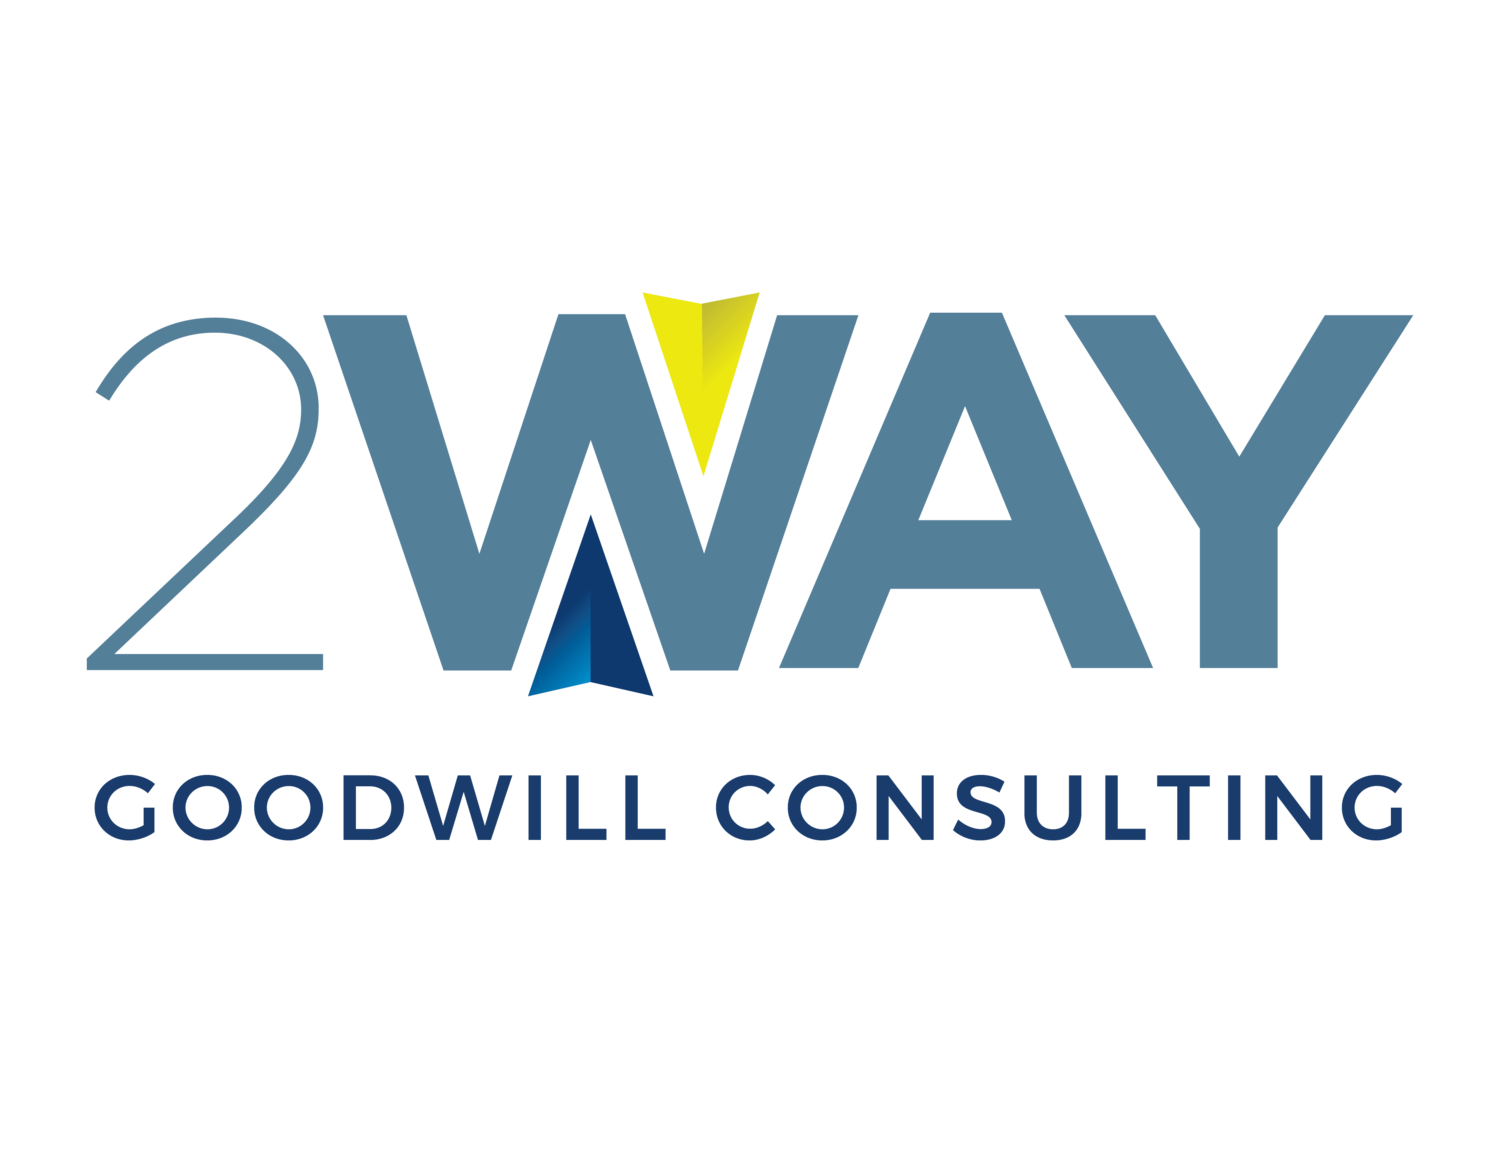 2WAY GOODWILL CONSULTING